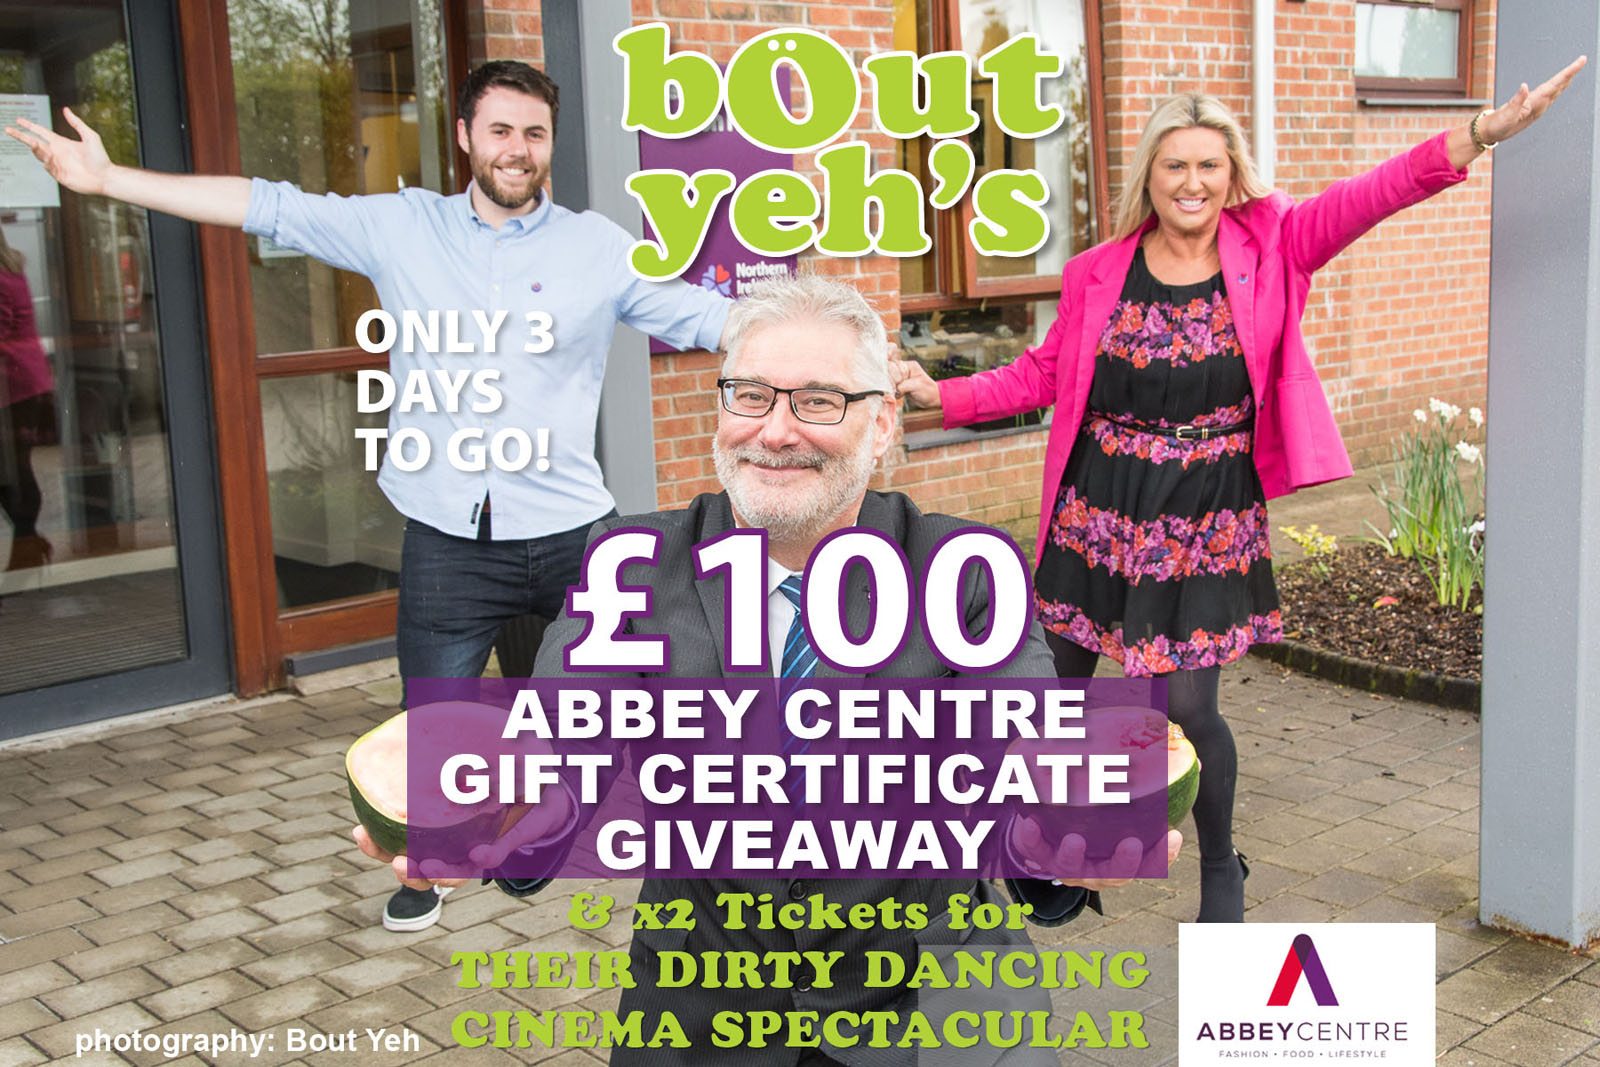 Social Media Marketing Consultants Belfast - Abbey Centre campaign photo 1847. Photo by Bout Yeh used in a Social Media Marketing campaign across Bout Yeh's Social Media platforms for Abbey Centre Northern Ireland.